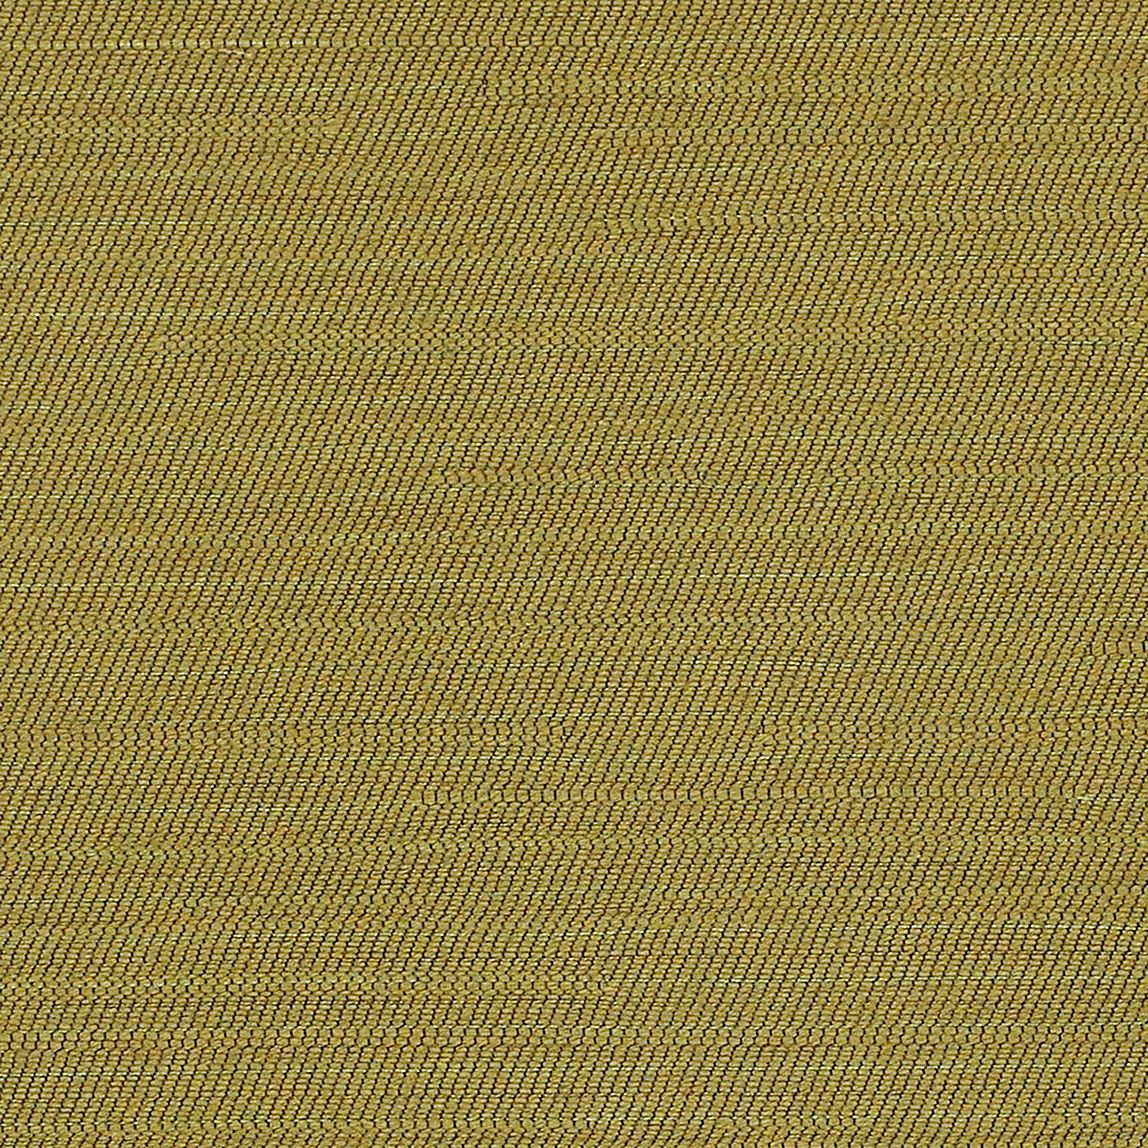 Weaving Palettes Olive Swatch